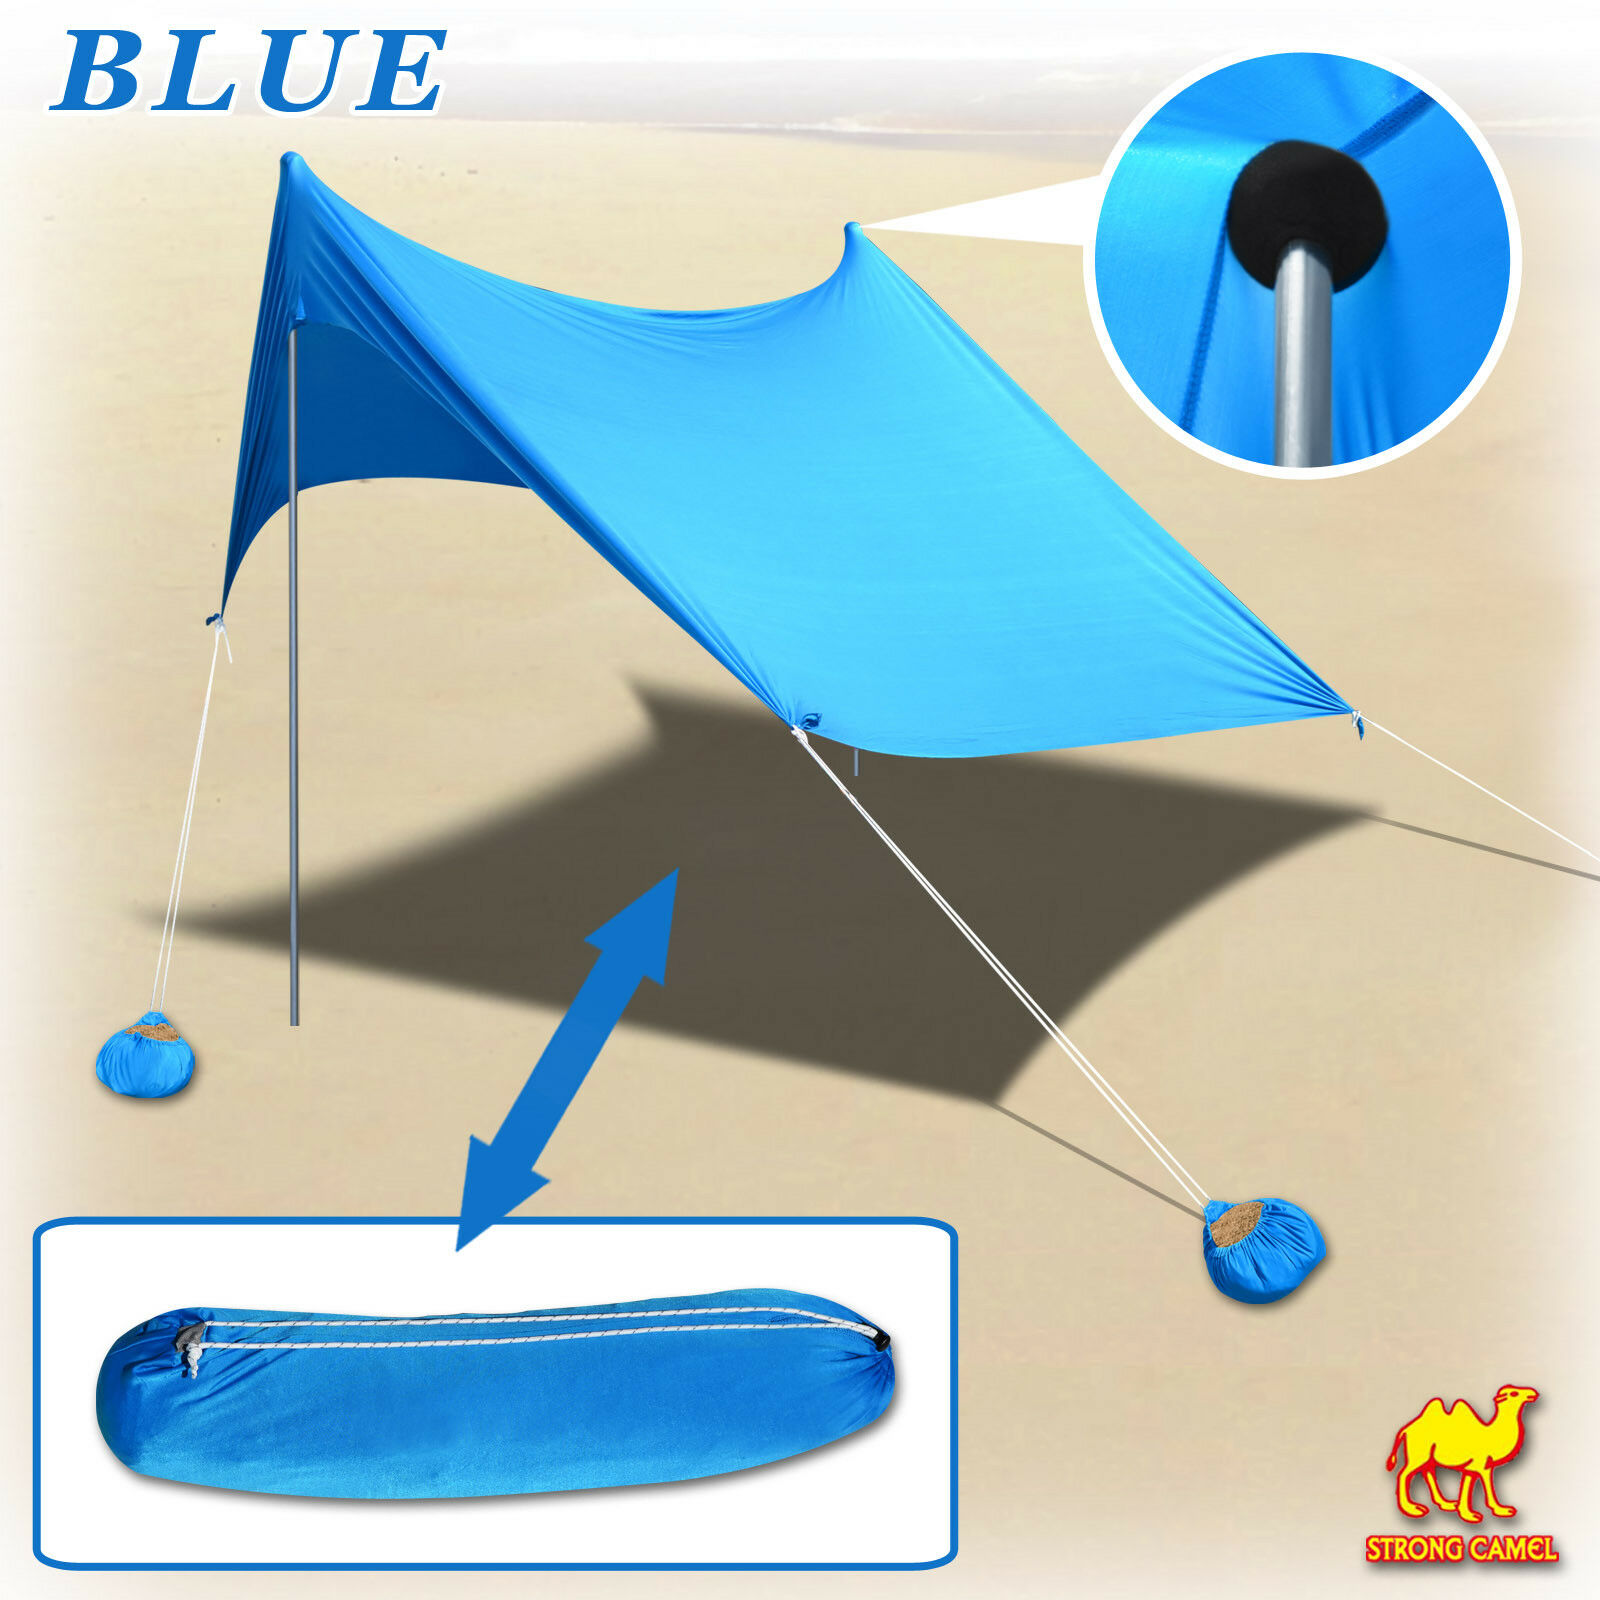 7'X7' Beach Tent Sunshade Shelter Portable Canopy UV Predect w Sand Anchor bluee